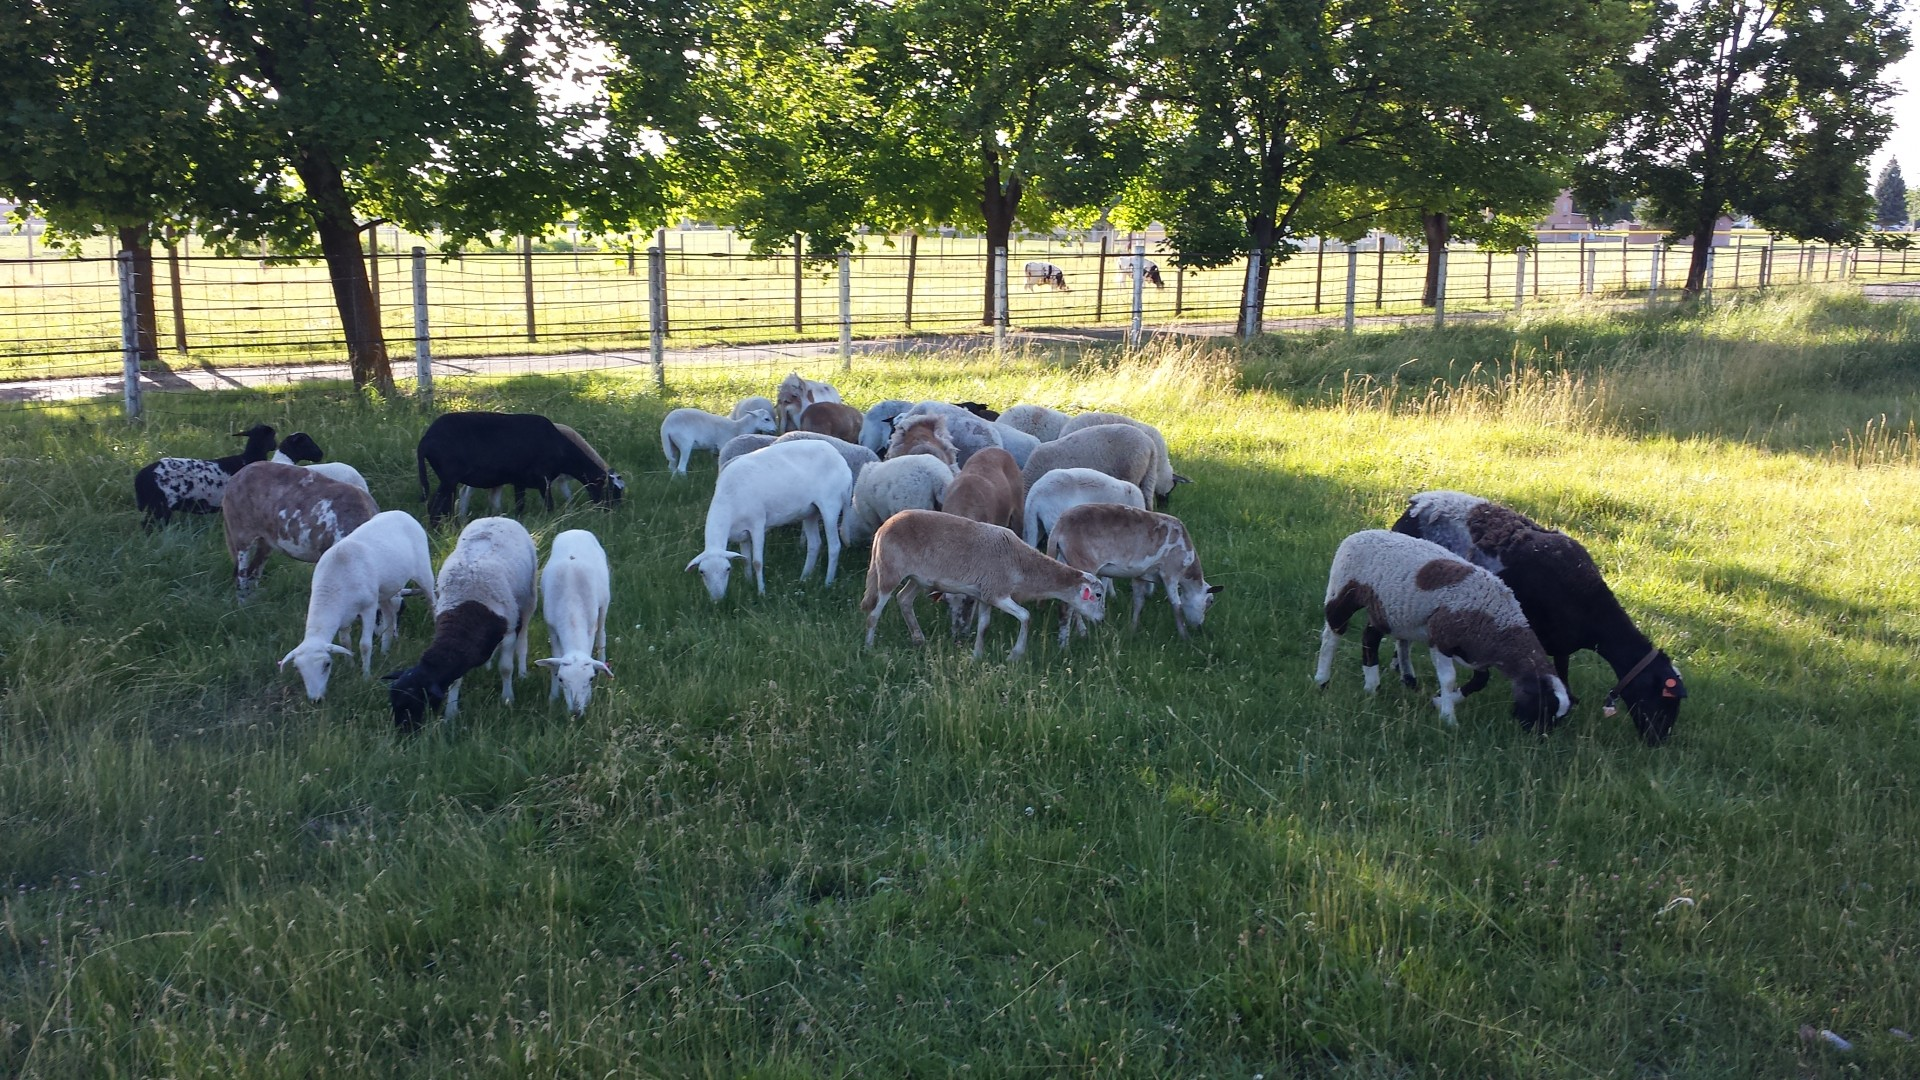 sheep ranch cougars personals Real estate and homes for sale in sheep ranch, ca on oodle classifieds join millions of people using oodle to find local real estate listings, homes for sales, condos for sale and foreclosures.